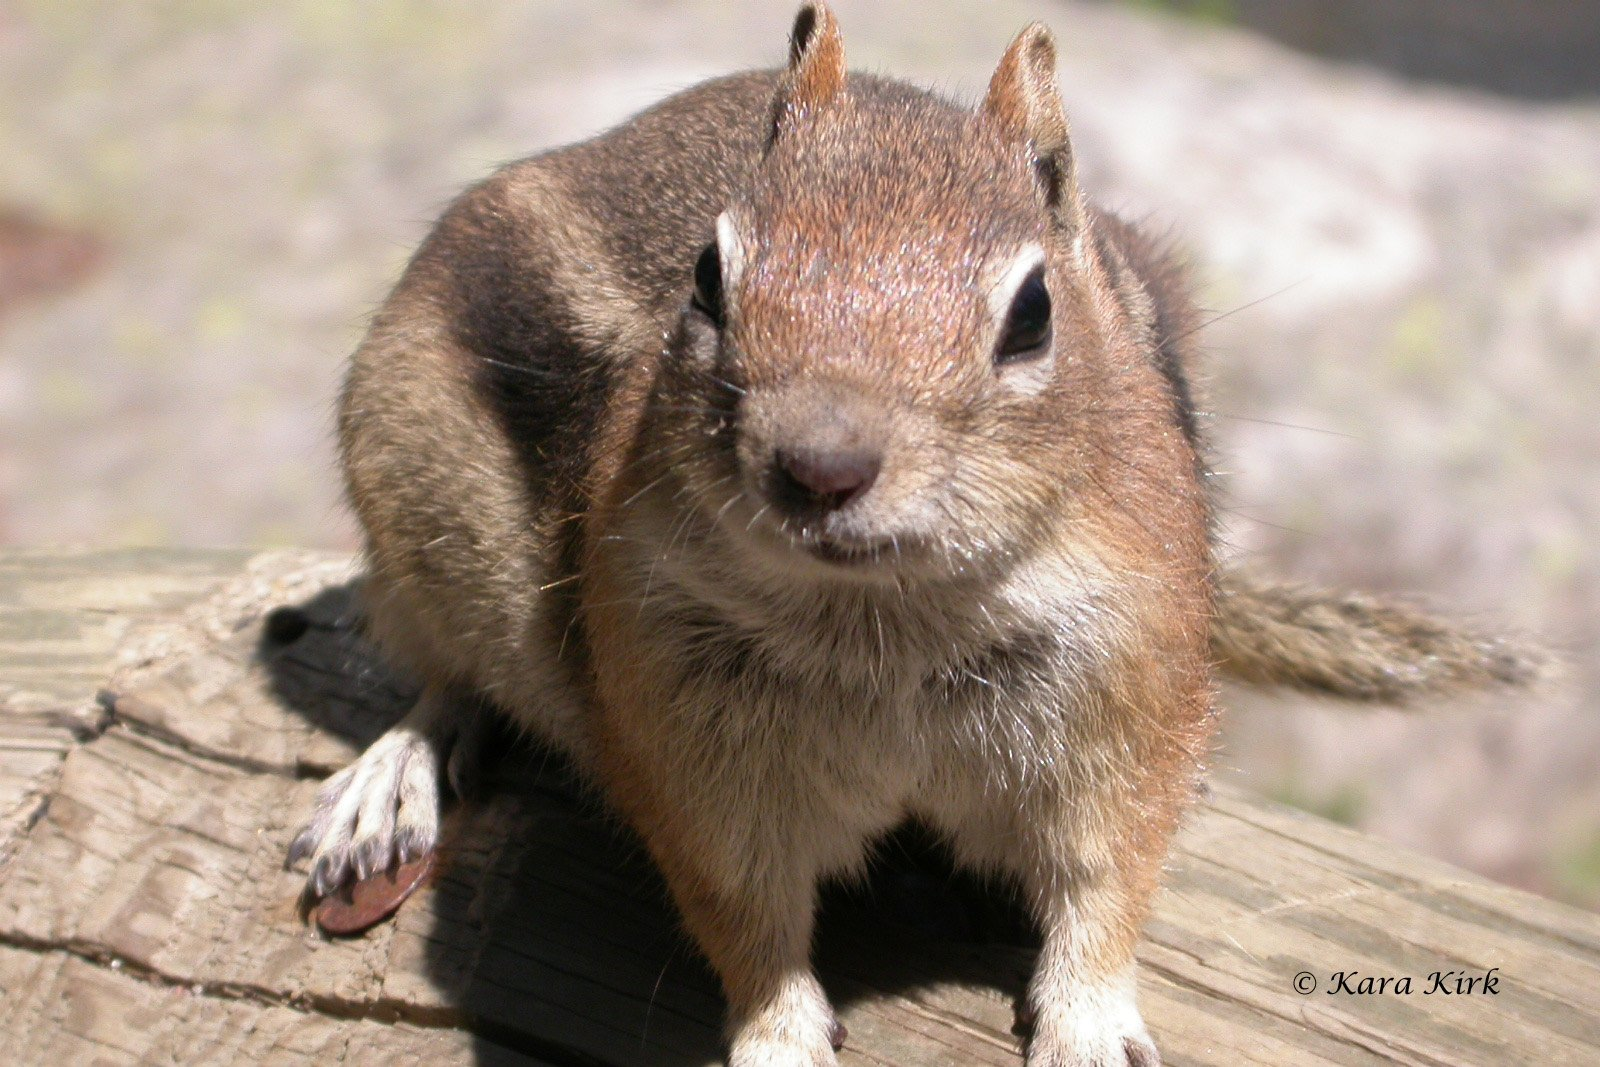 https://0201.nccdn.net/4_2/000/000/06b/a1b/Bear-Lake-Ground-Squirrel-37-08-08-04-4x6-1600x1067.jpg